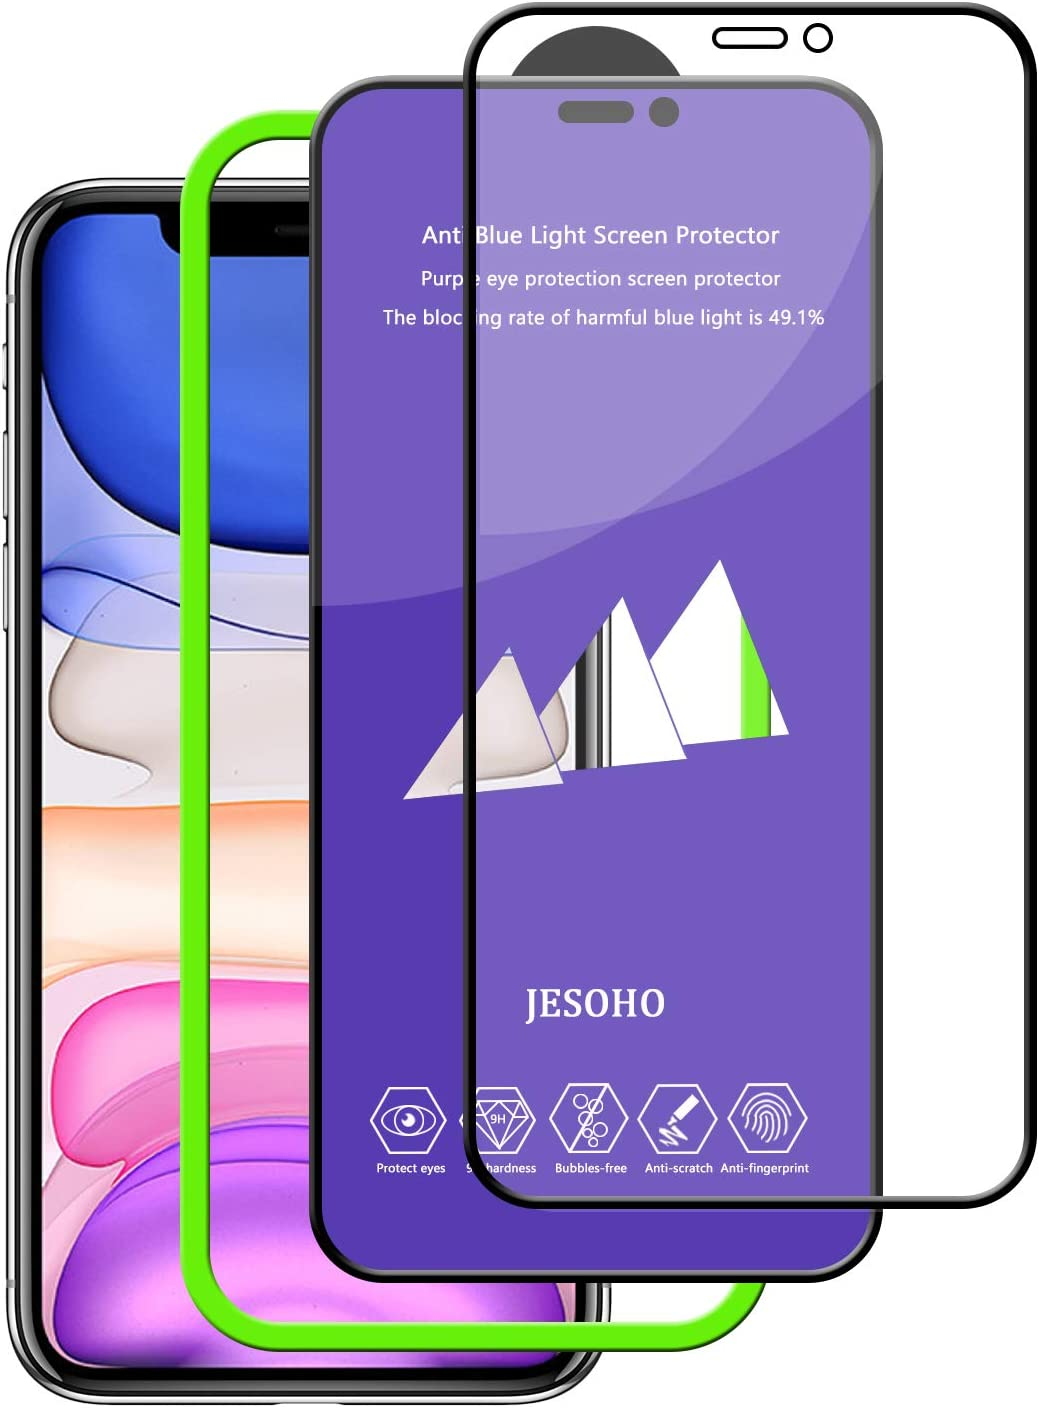 JESOHO Anti Blue Light Screen Protector for iPhone 11 Pro Max/Xs Max, Blue Light Filter Tempered Glass with Installation Frame Eye Protection Film for 11 Pro Max/Xs Max [2 Pack] (Blocking rate 49.1%)